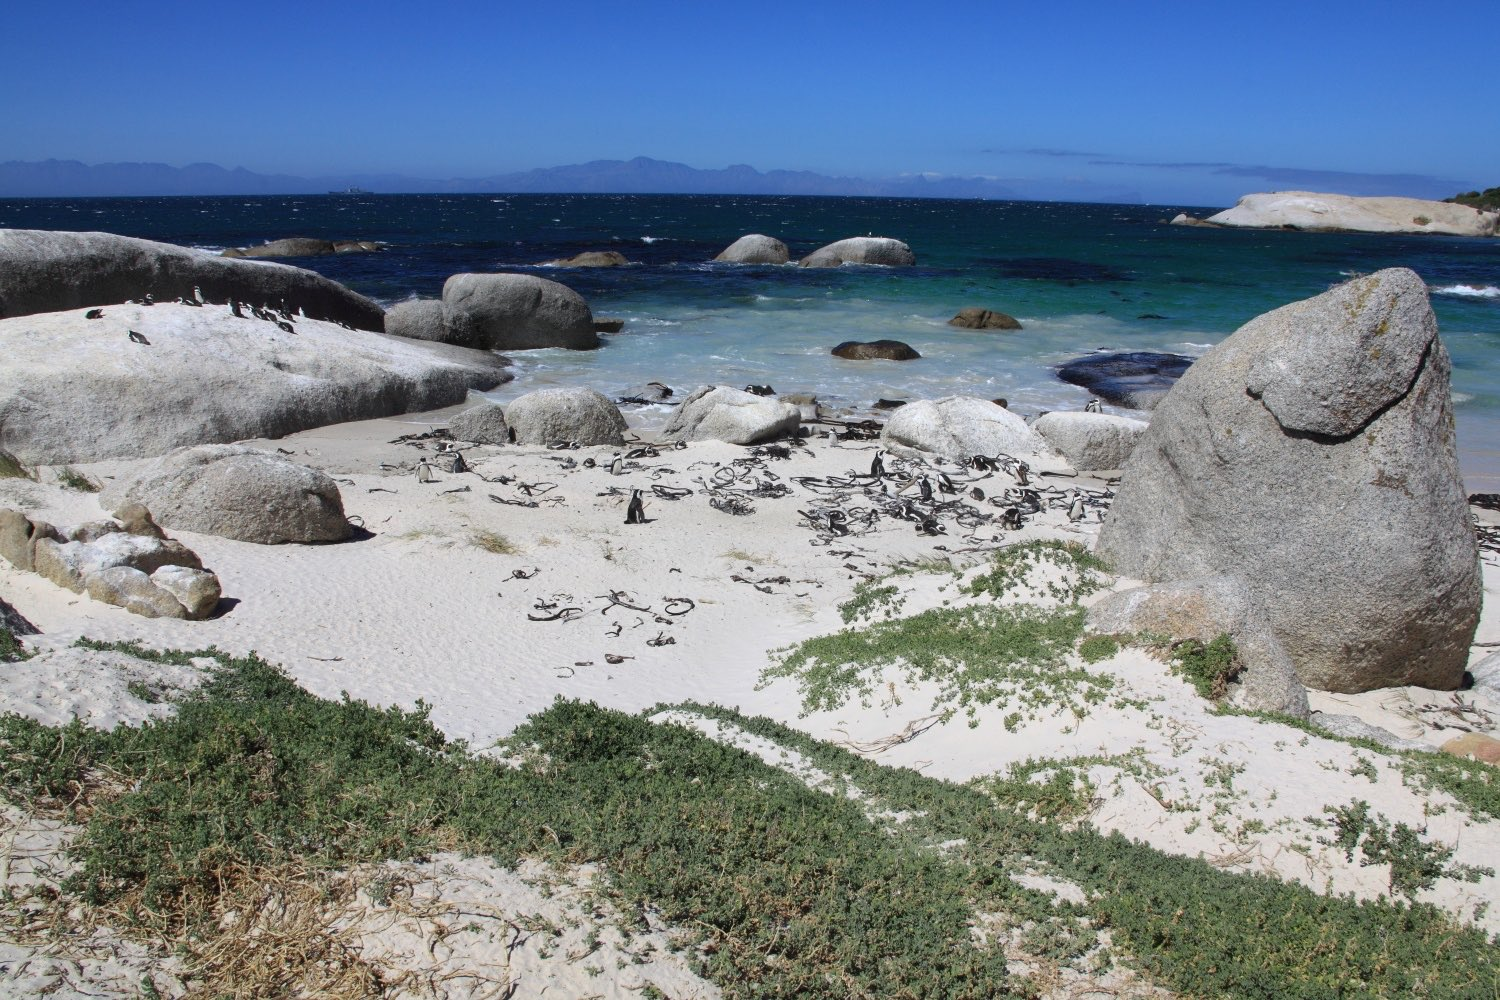 Penguin's Bay!    The Boulders Beach Penguin Colony is located close to the seaside village of Simons Town. South Africa. 07 March 2012. 1/640 s, f/16, +1/3 EV, ISO 320, 28 mm, EOS 5D Mark II + EF 28-300 L